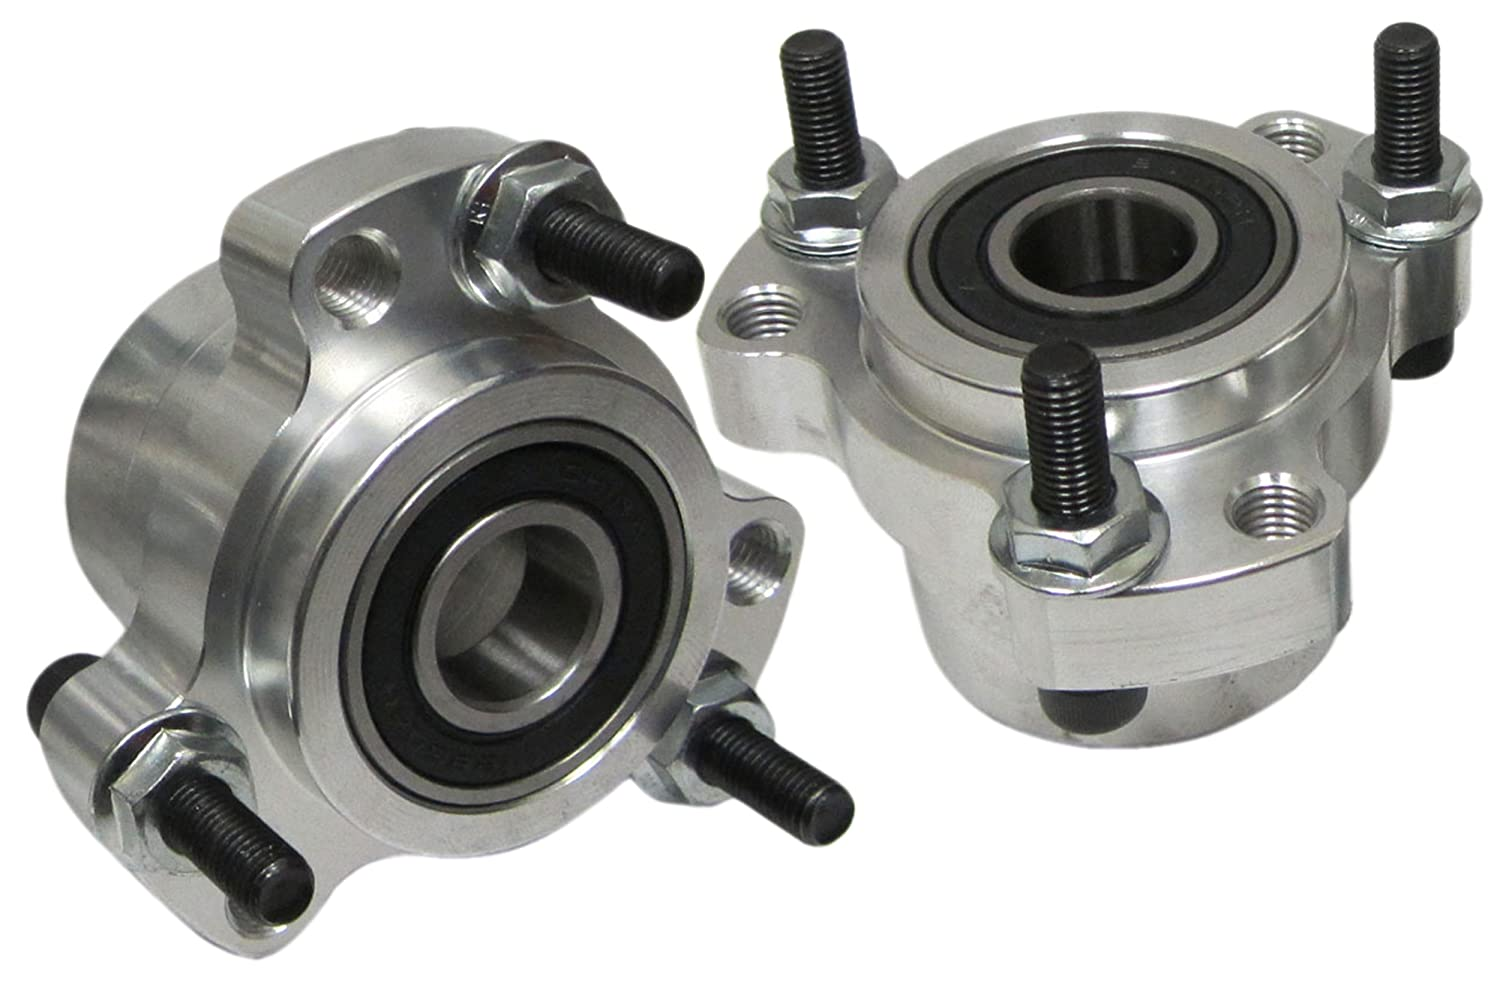 Set of 2 - Clear Lightened Aluminum Front Wheel Hubs Go Kart Racing Drift Trike BMI Karts